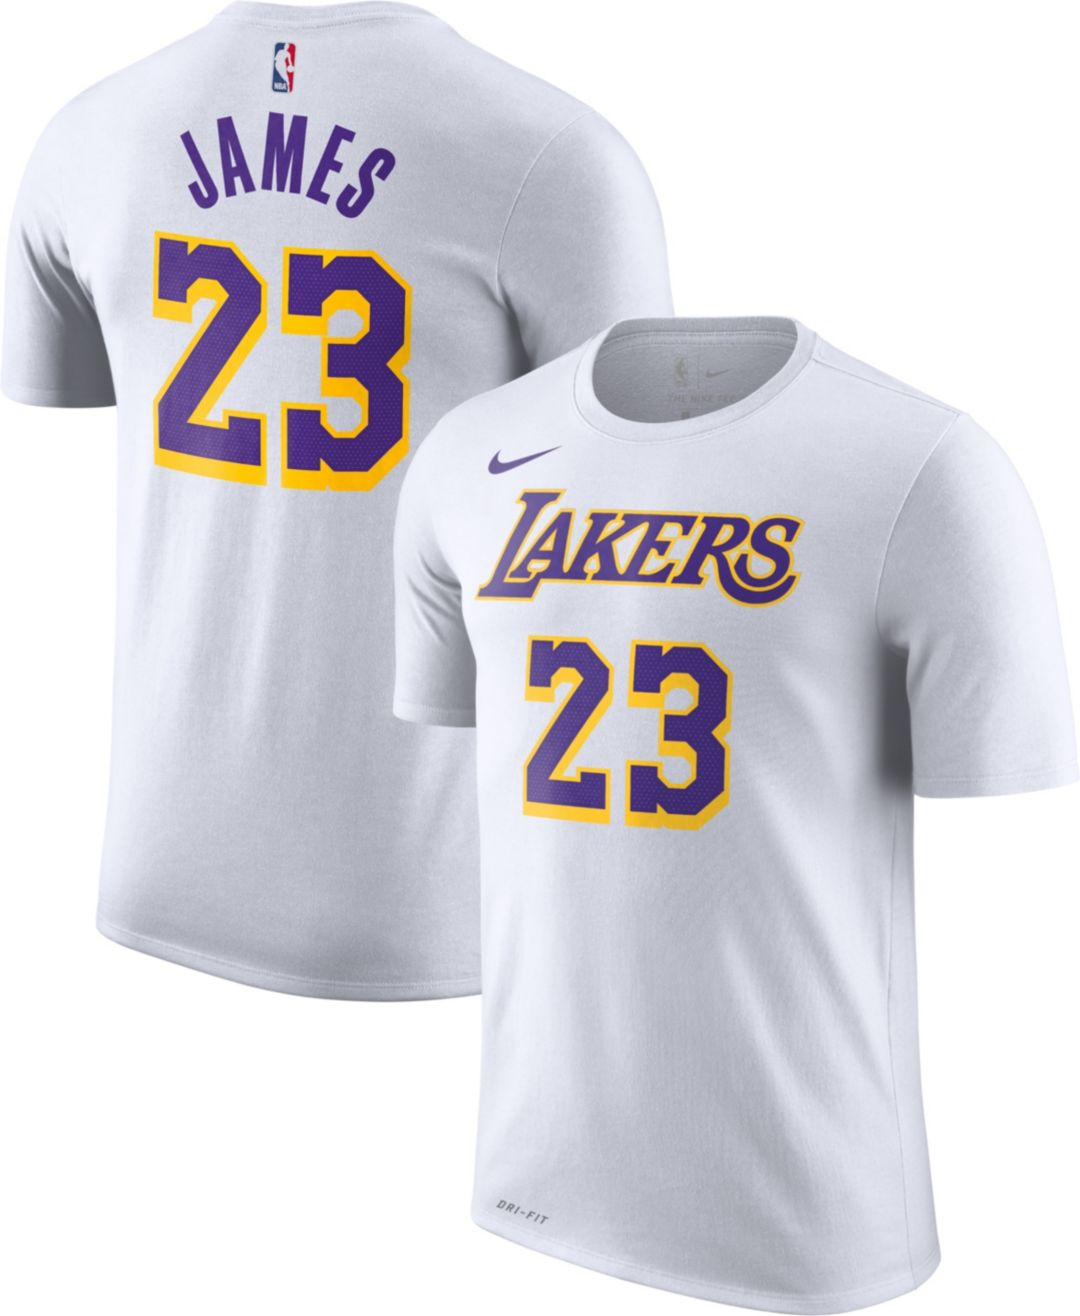 new styles 40ec7 dc729 Nike Youth Los Angeles Lakers LeBron James Dri-FIT White T-Shirt